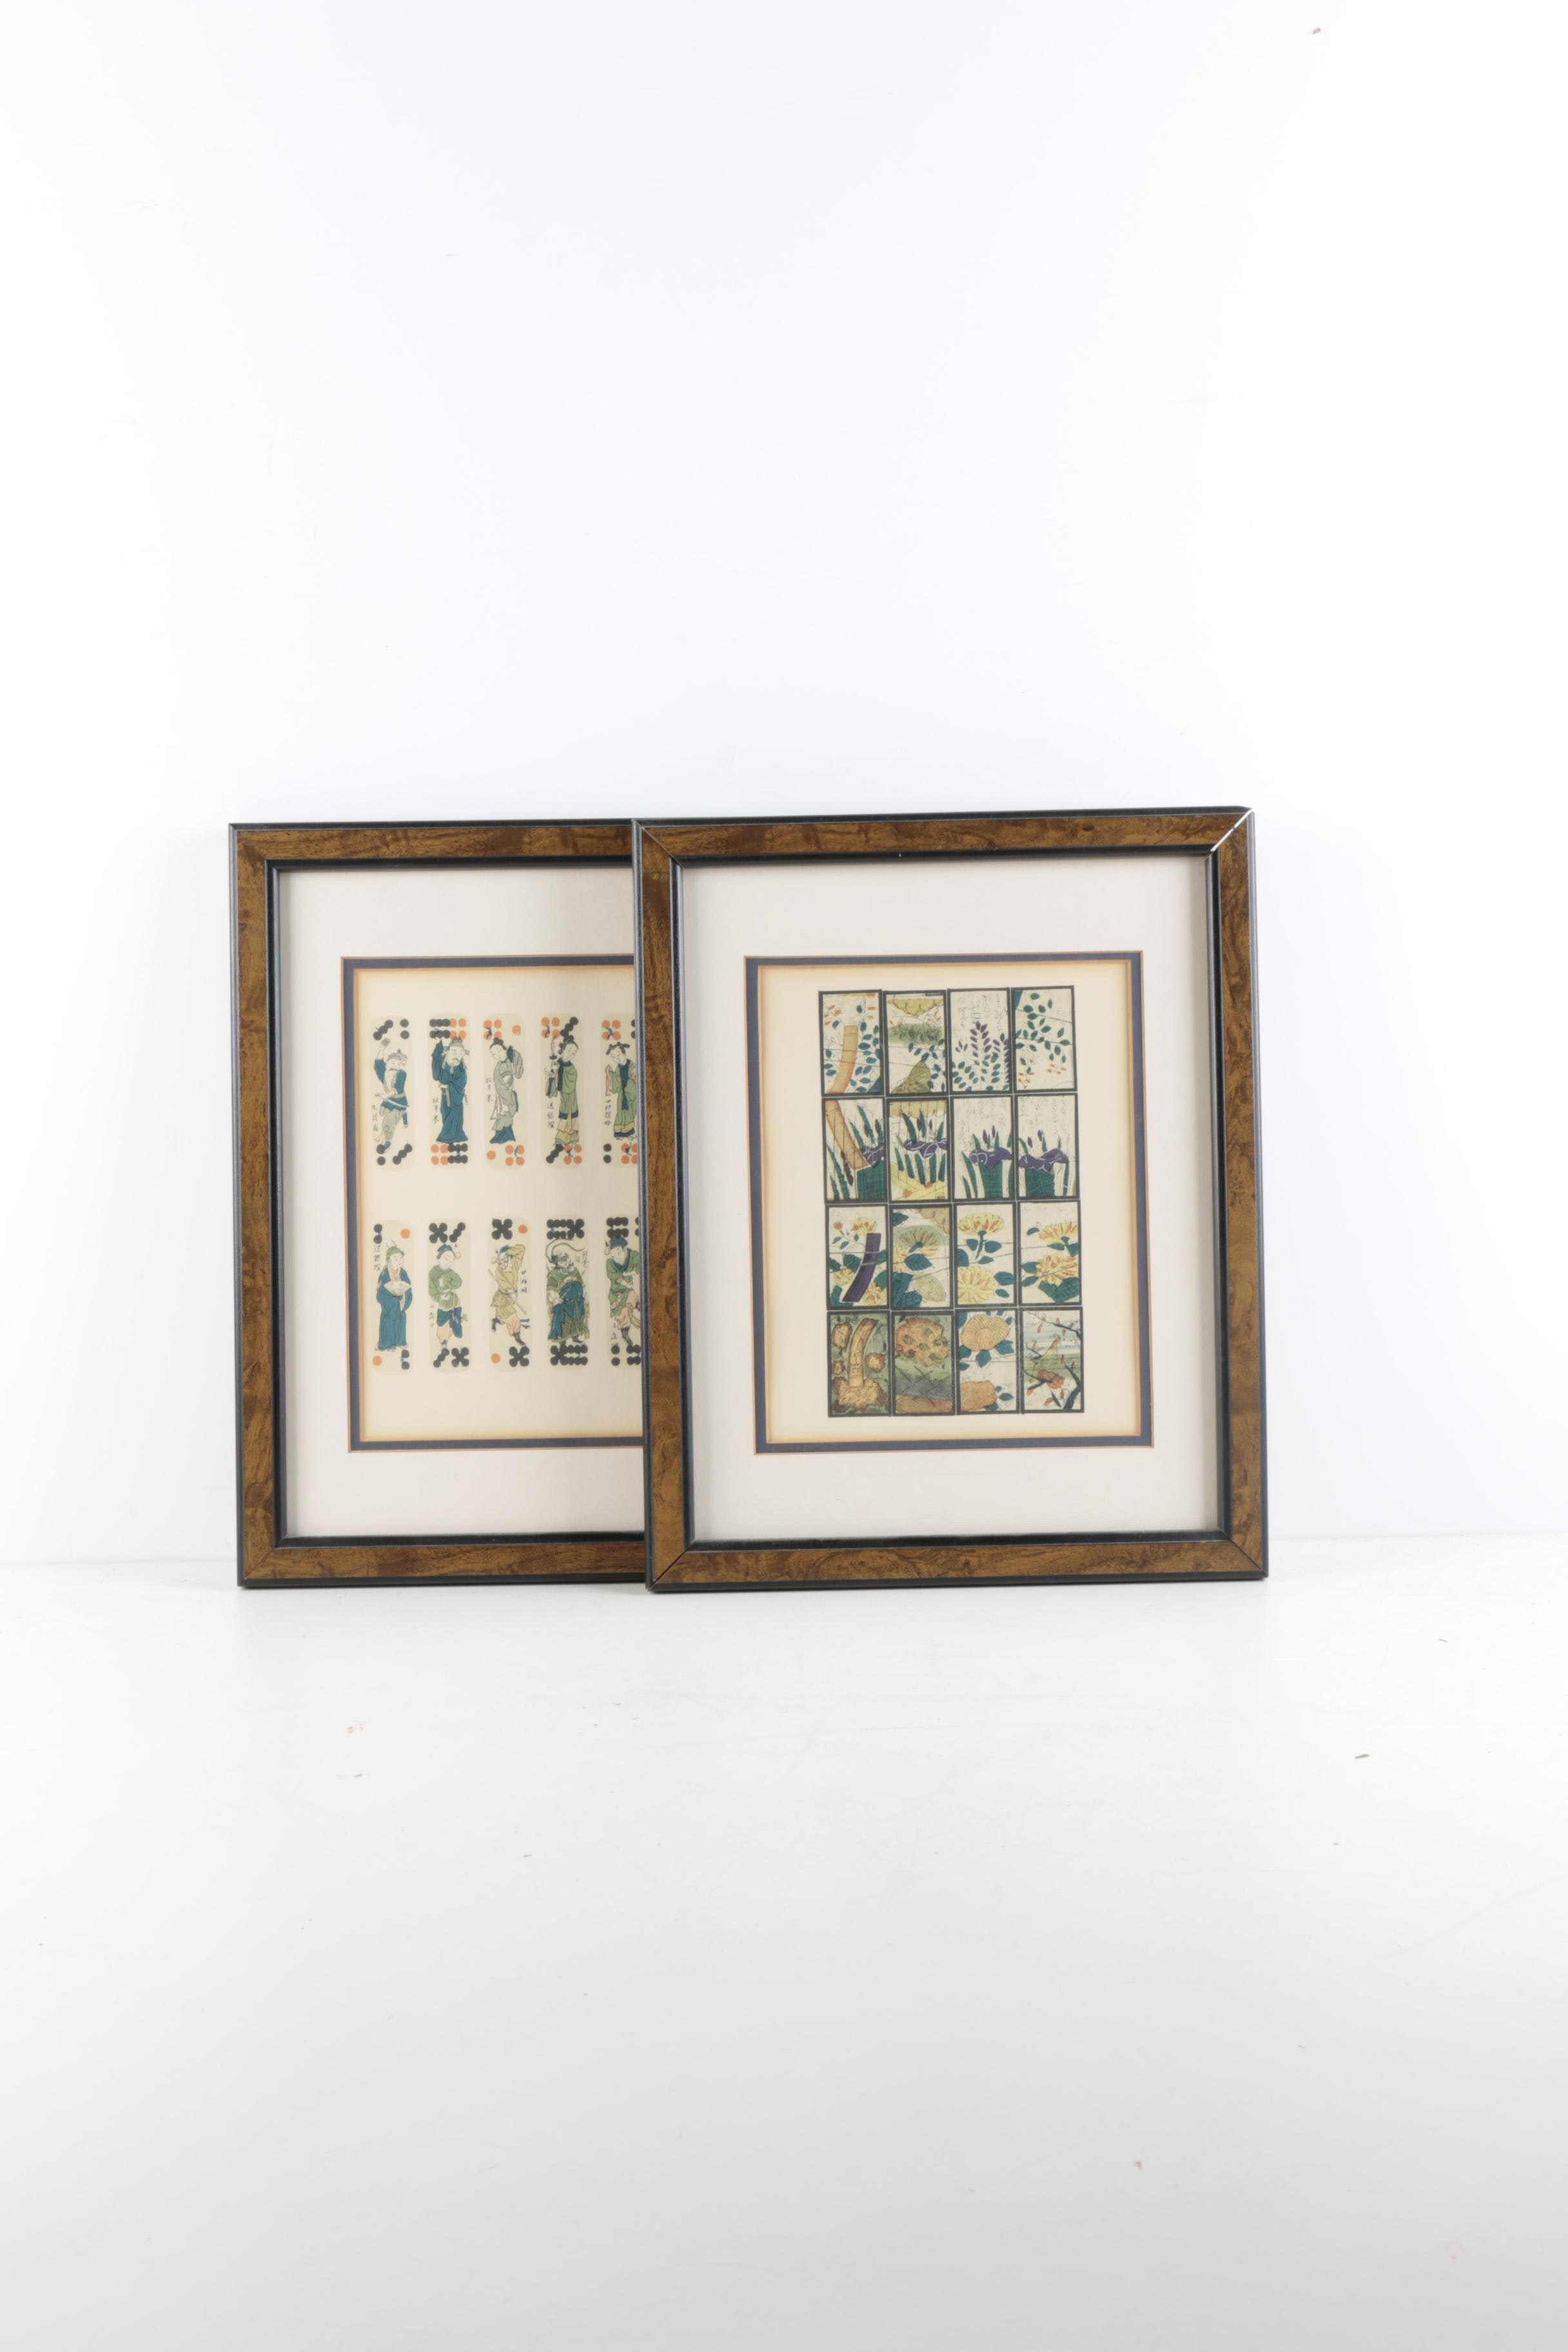 Two Framed East Asian Inspired Offset Lithographs